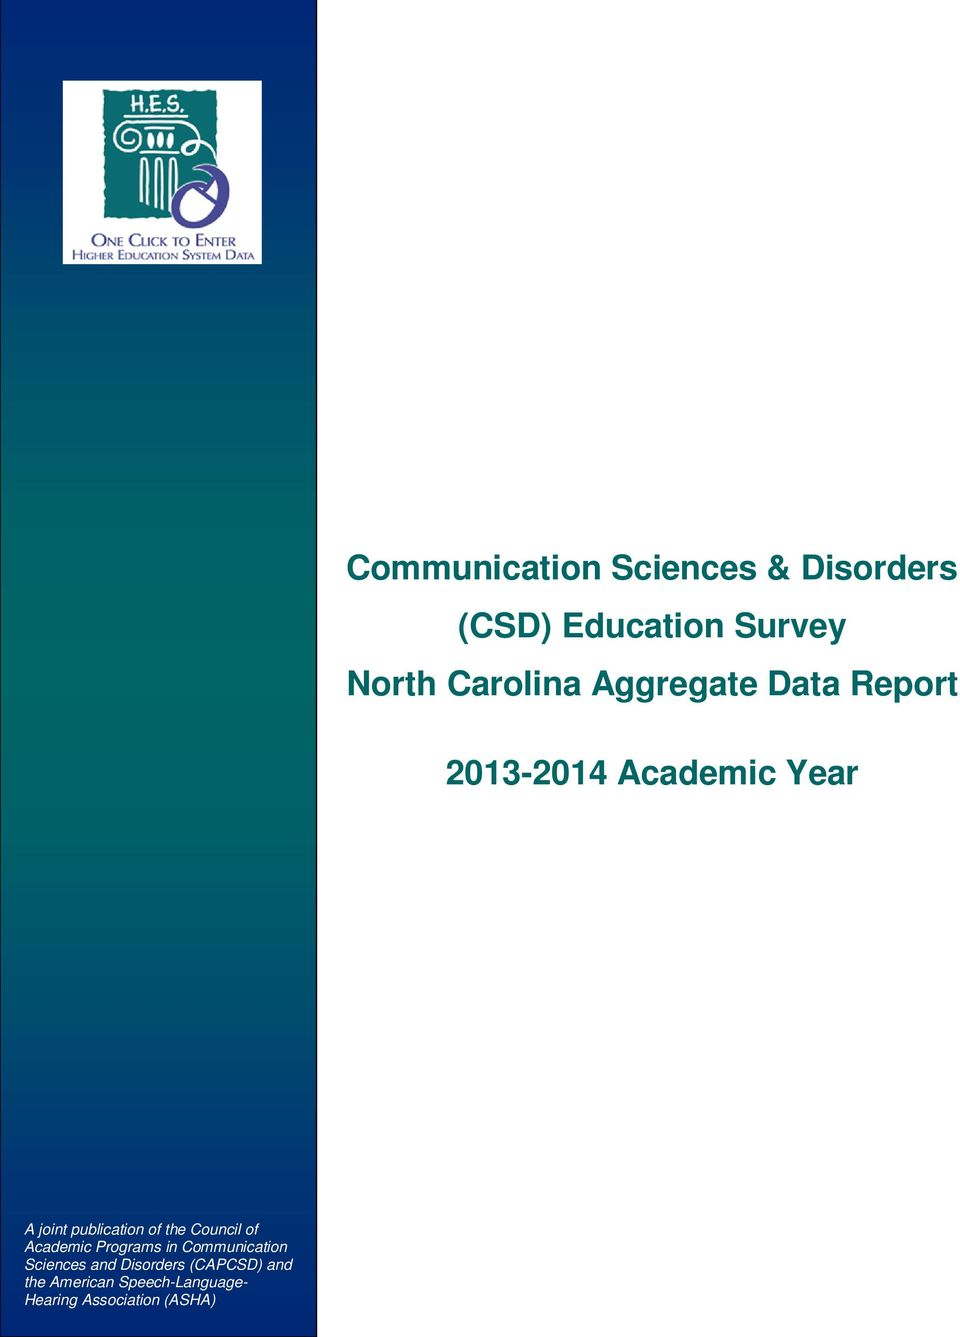 Communication Communication Sciences and Disorders Sciences (CAPCSD) and and Disorders the American